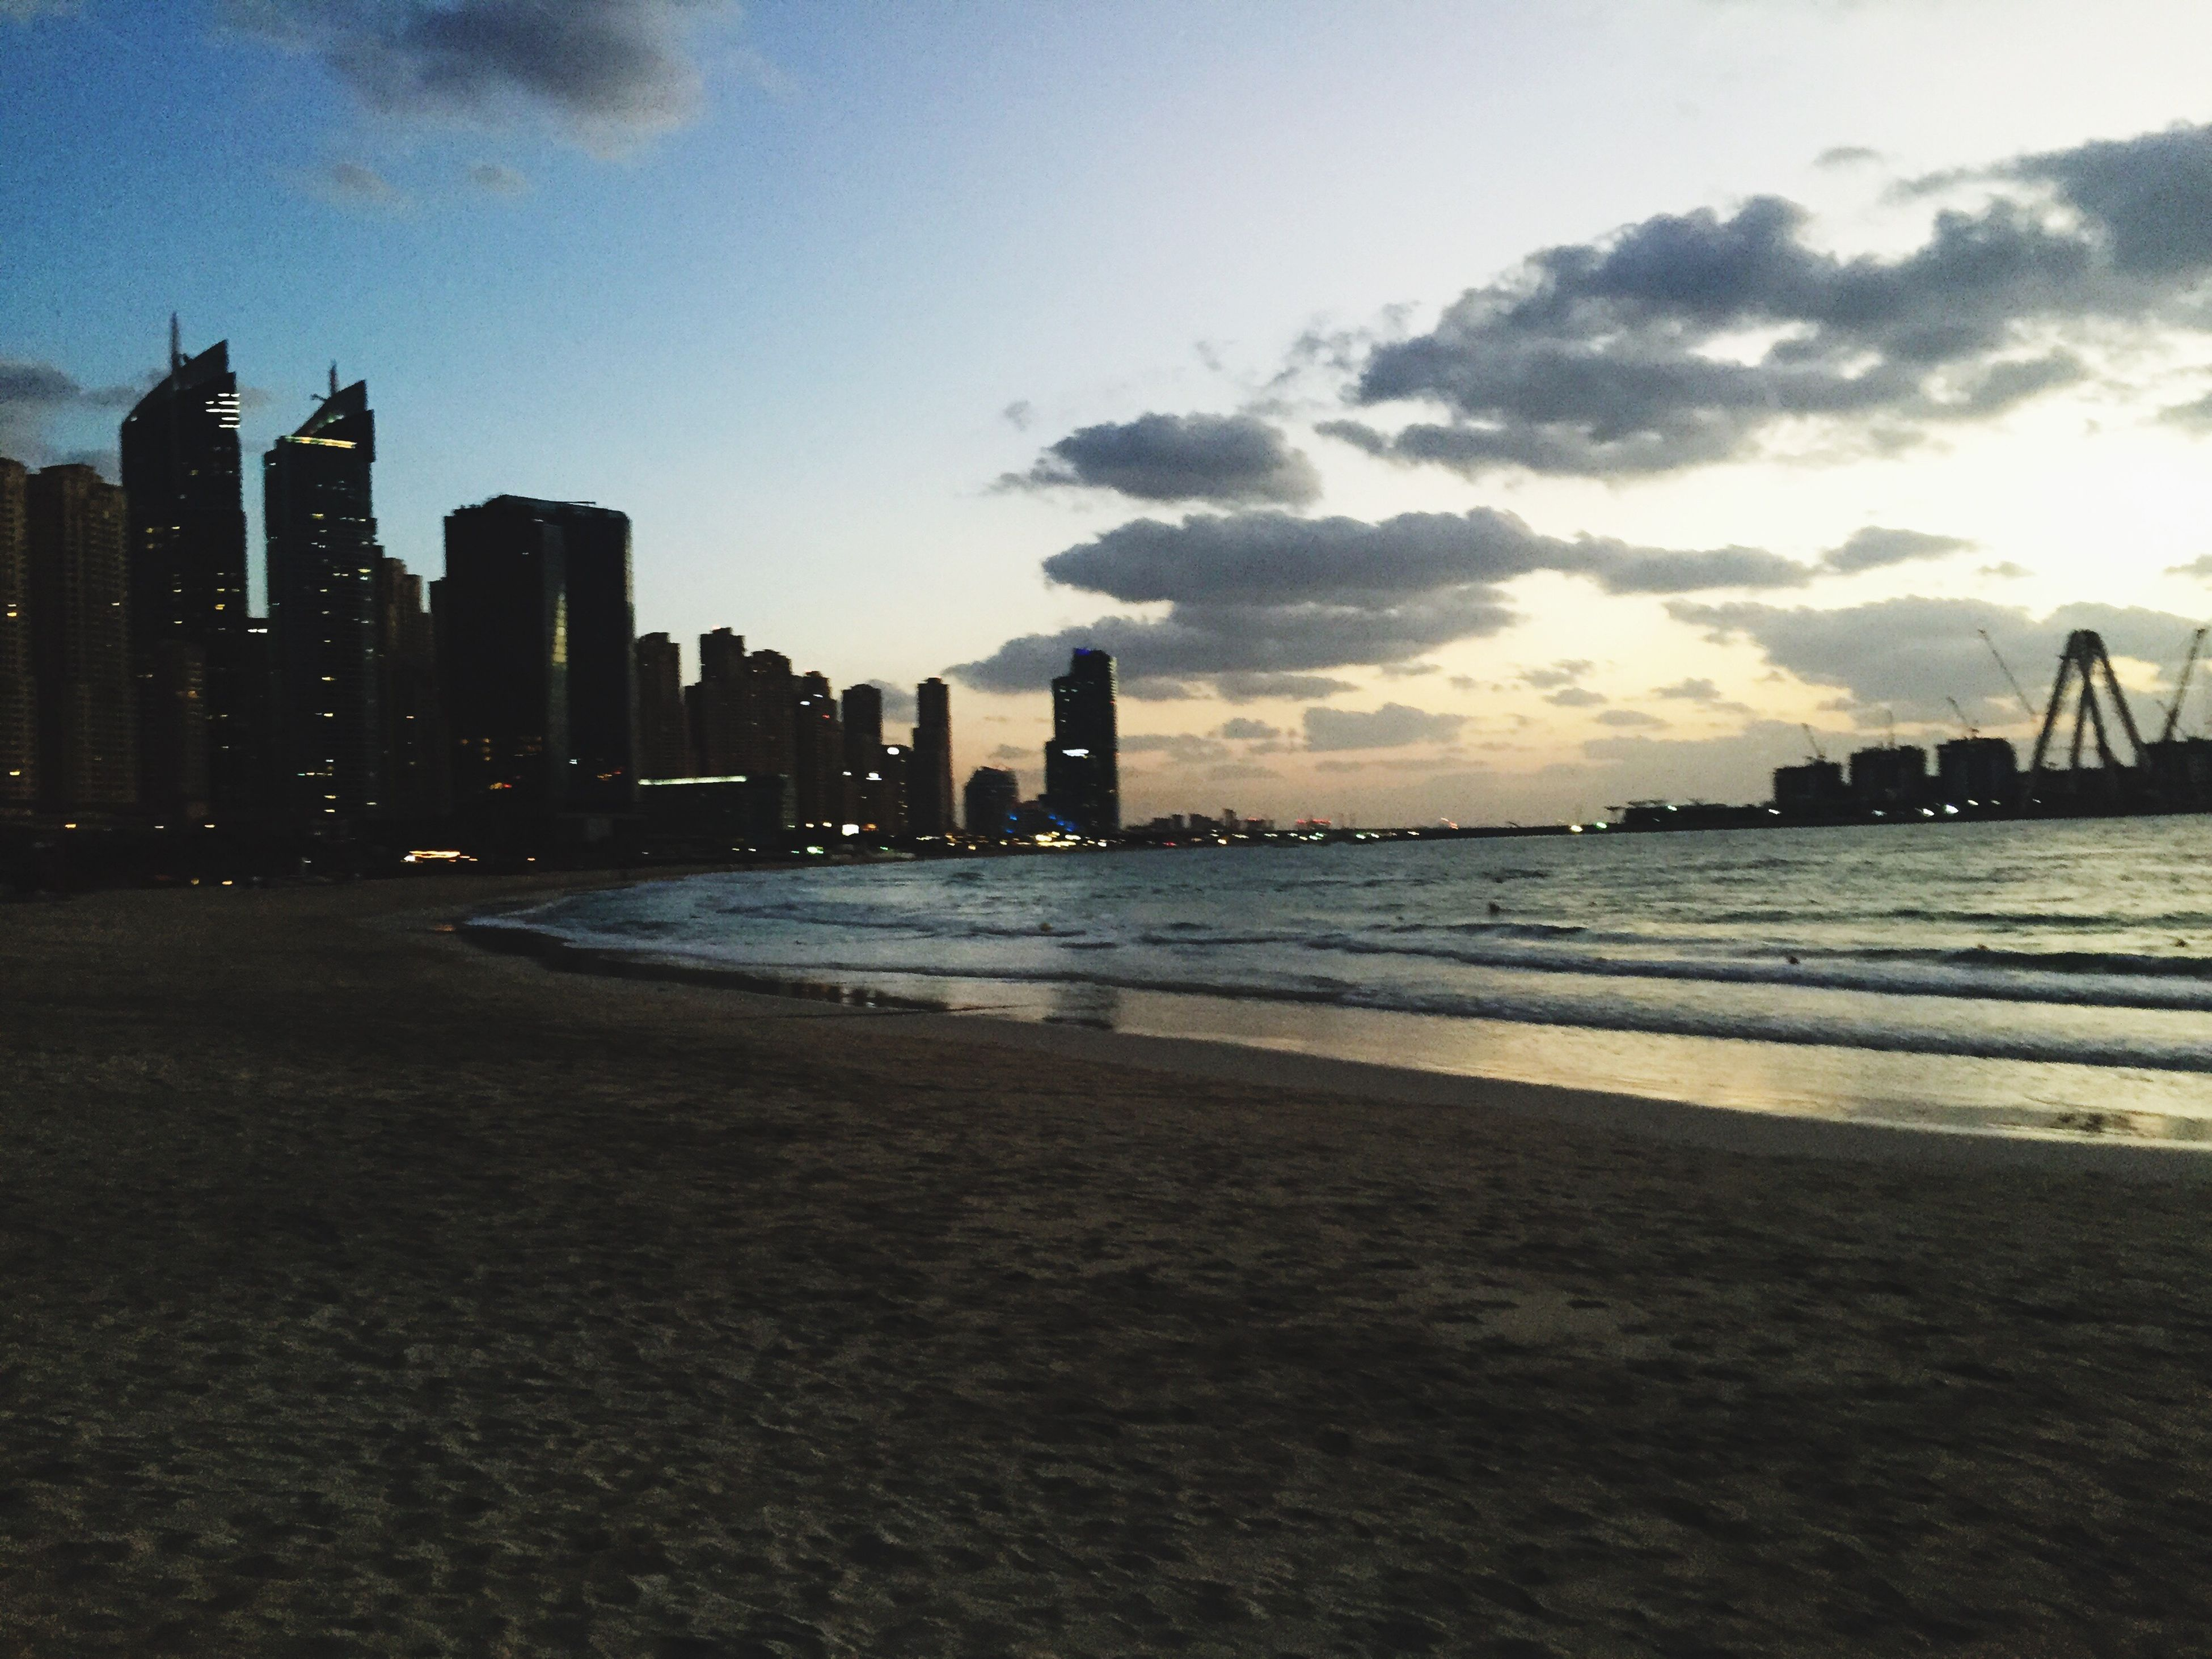 city, architecture, skyscraper, building exterior, built structure, sea, modern, sky, sunset, urban skyline, water, cityscape, outdoors, beach, cloud - sky, travel destinations, sand, no people, downtown district, day